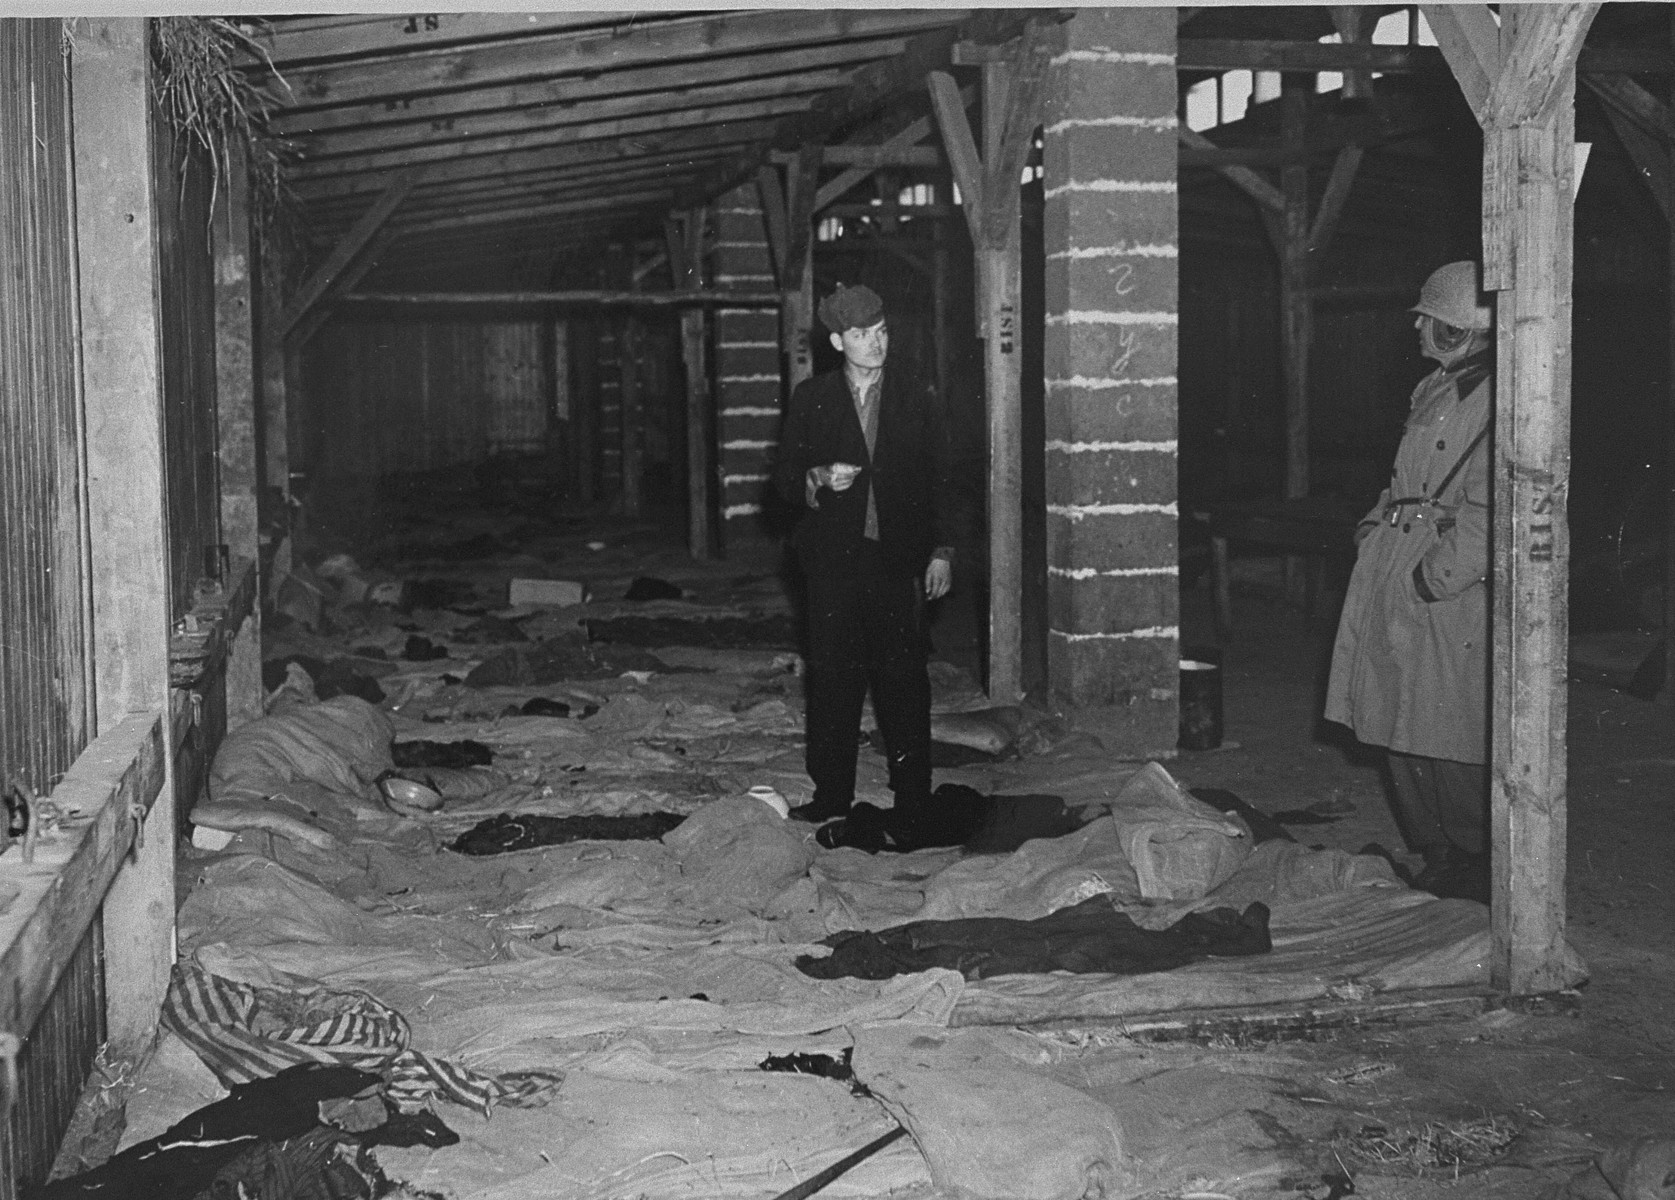 A survivor of the Ohrdruf concentration camp shows U.S. Army Colonel Hayden Sears the inside of a barracks where 196 prisoners lived.